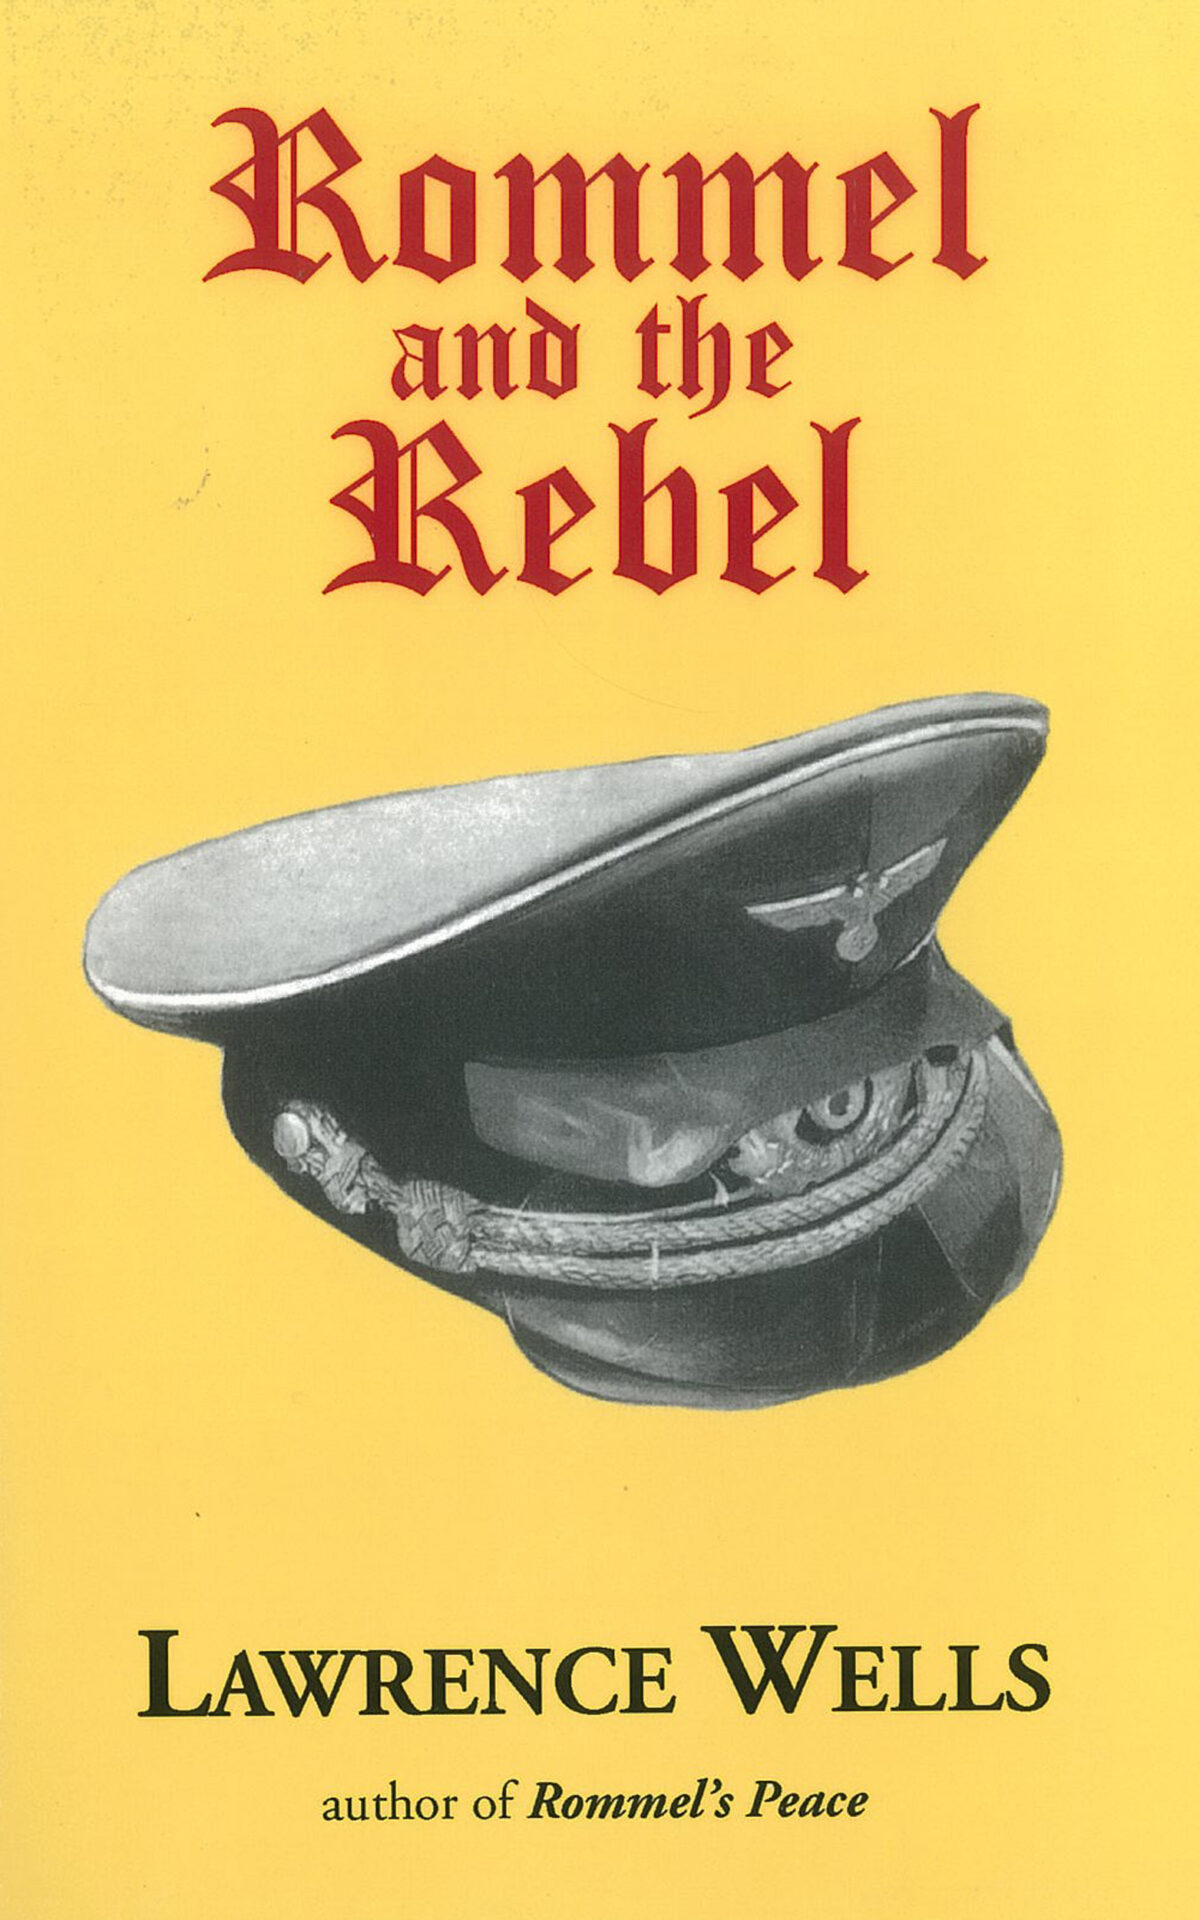 Rommel and the Rebel